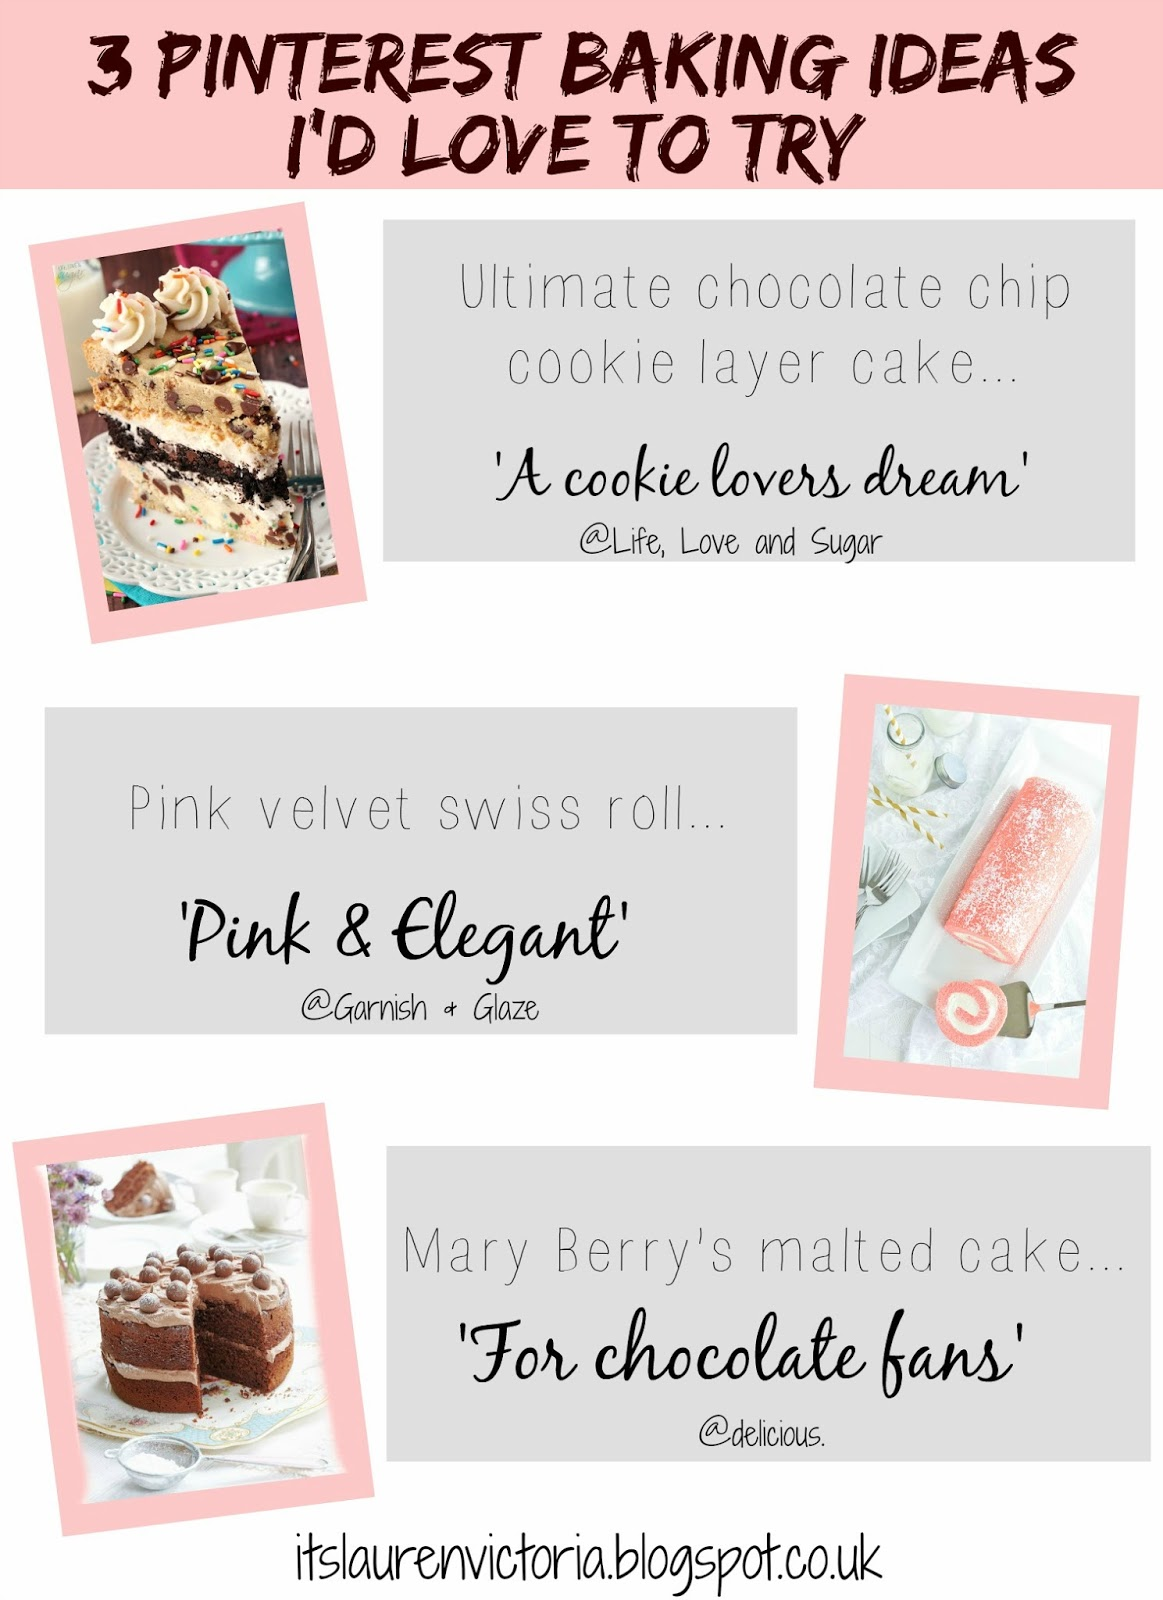 3 Pinterest Baking Ideas I'd Love To Try